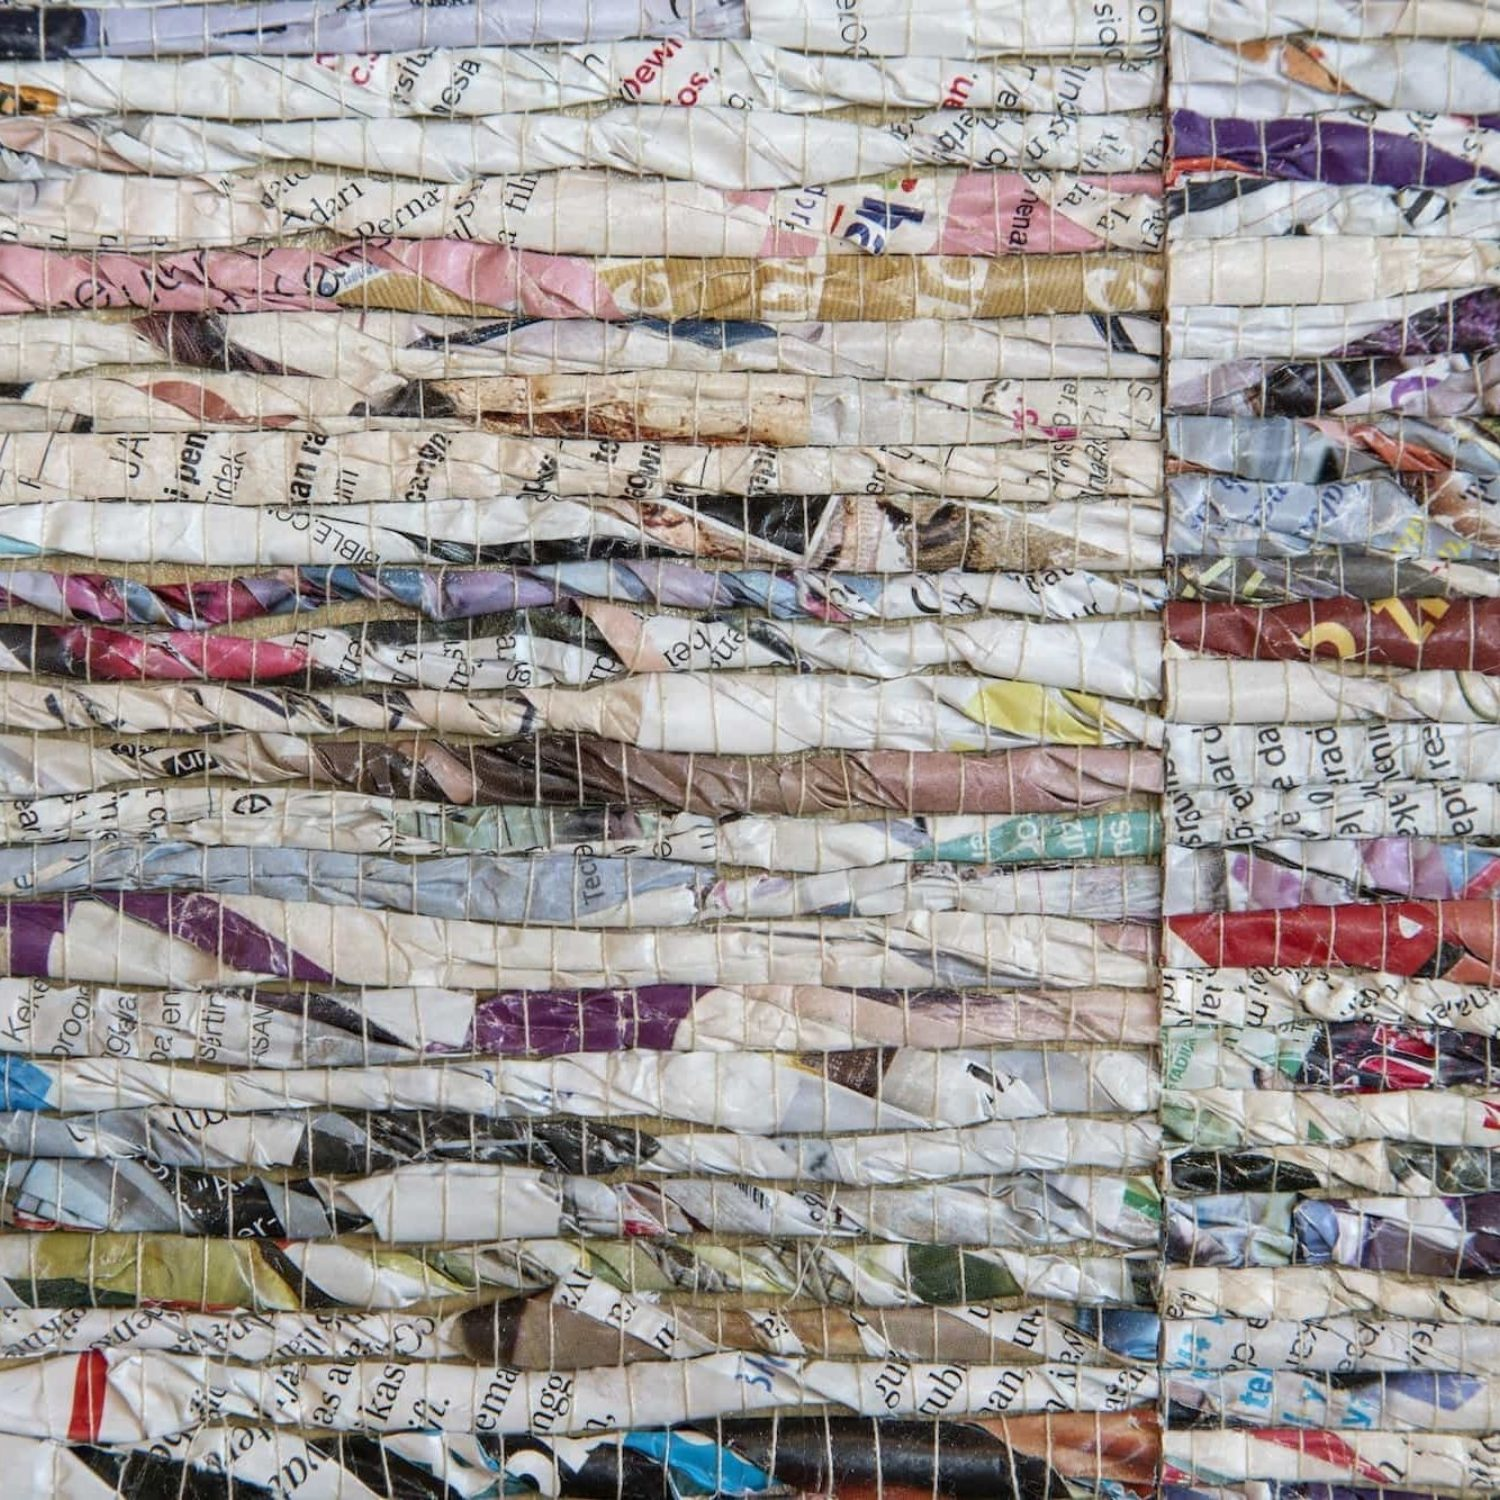 Textured wall from recycled materials